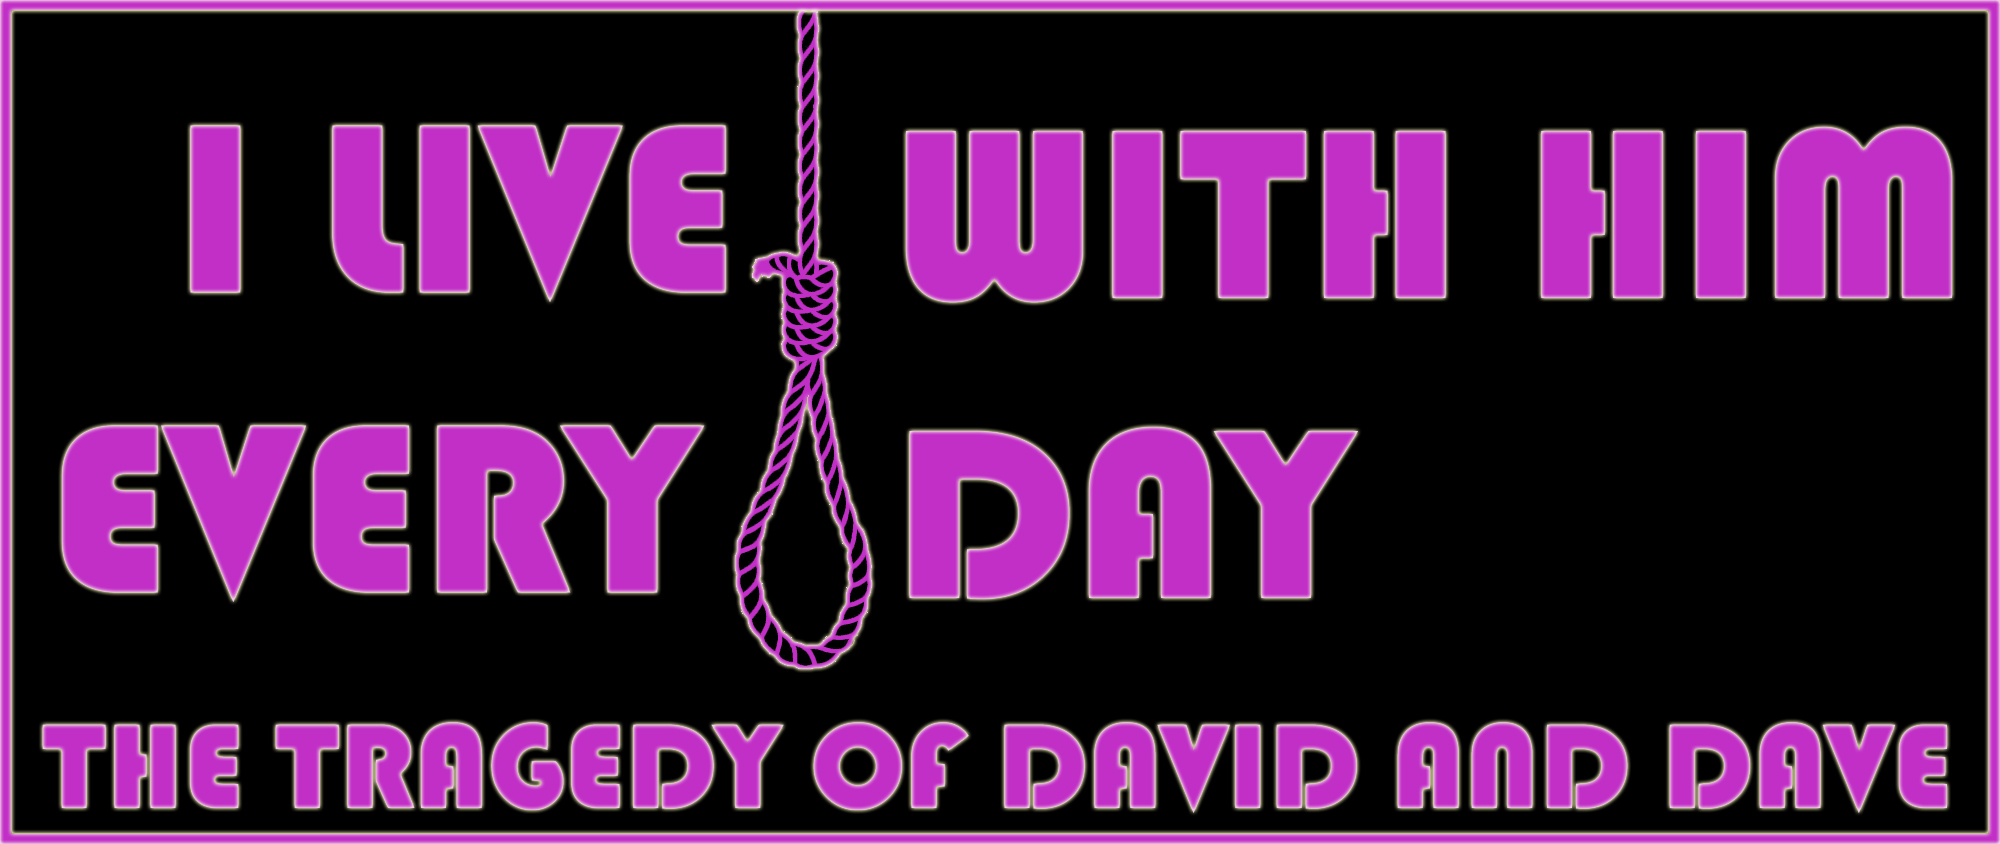 I Live With Him Every Day: The Tragedy of David and Dave – 2016, Ontario Micro Tour